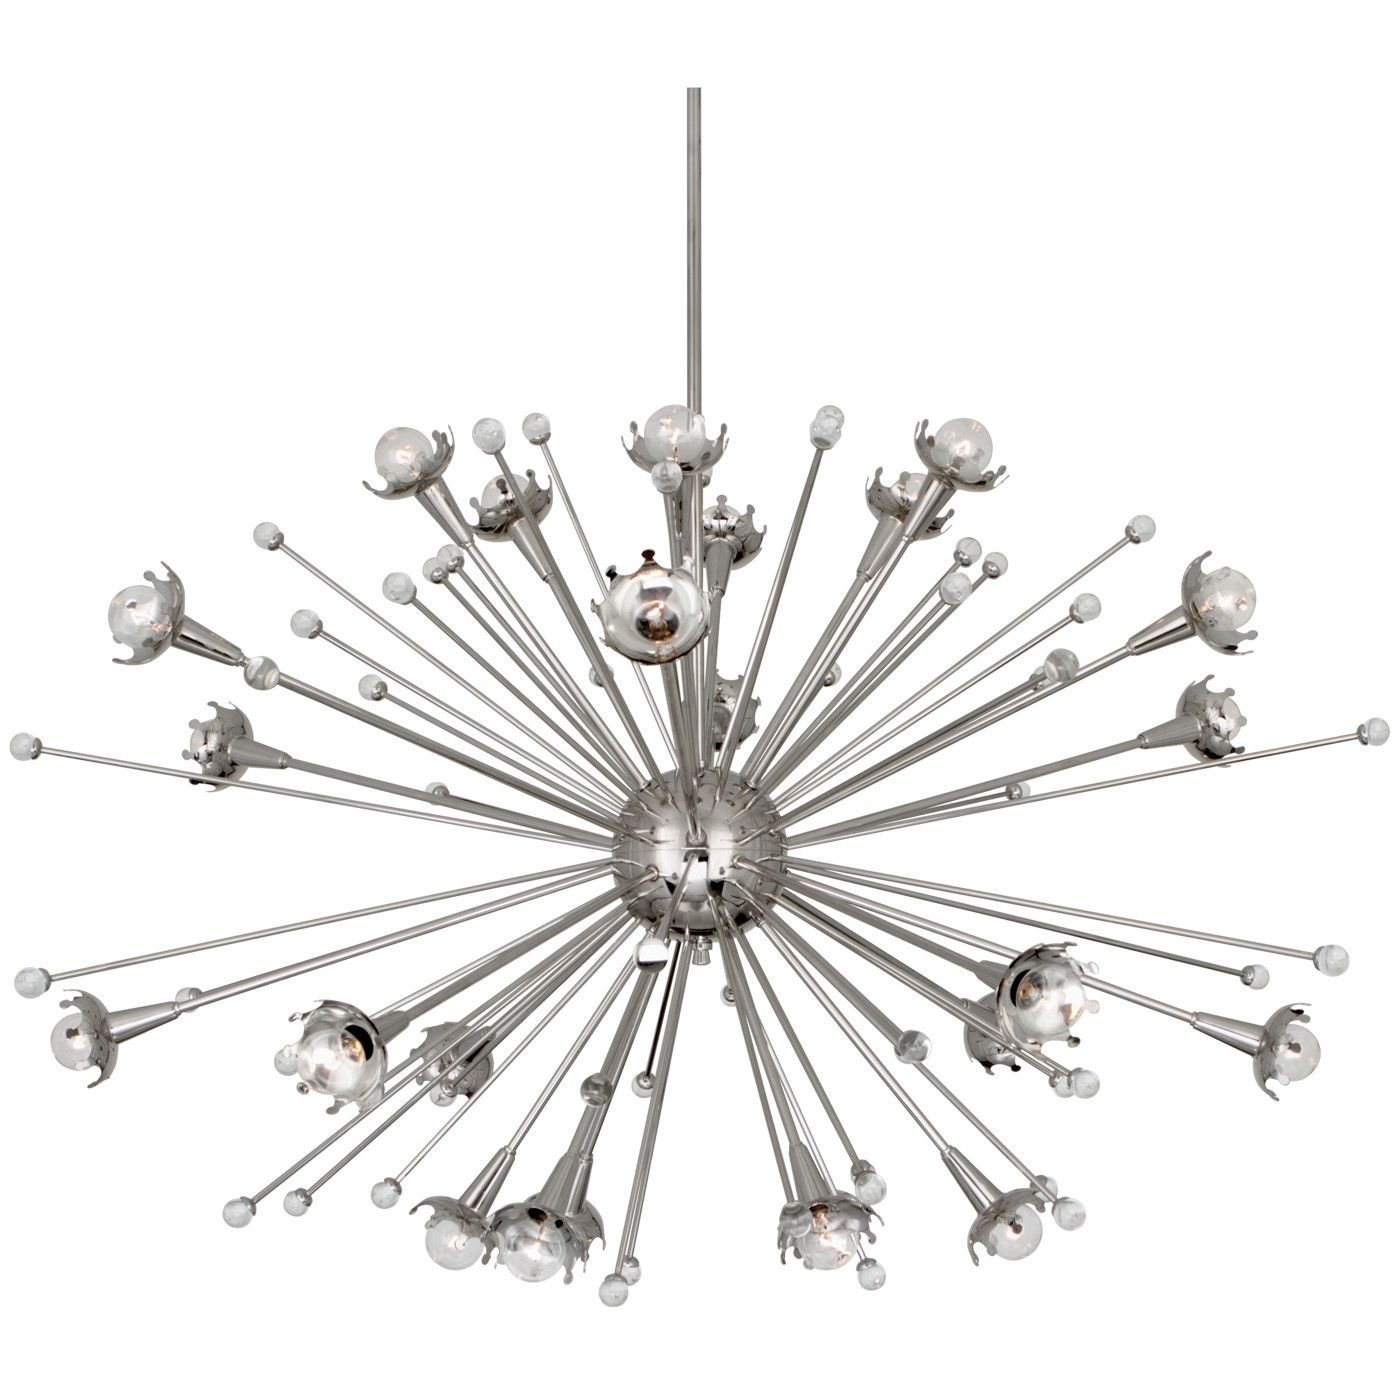 Modern Lighting Giant Sputnik Chandelier Ceiling Lamp